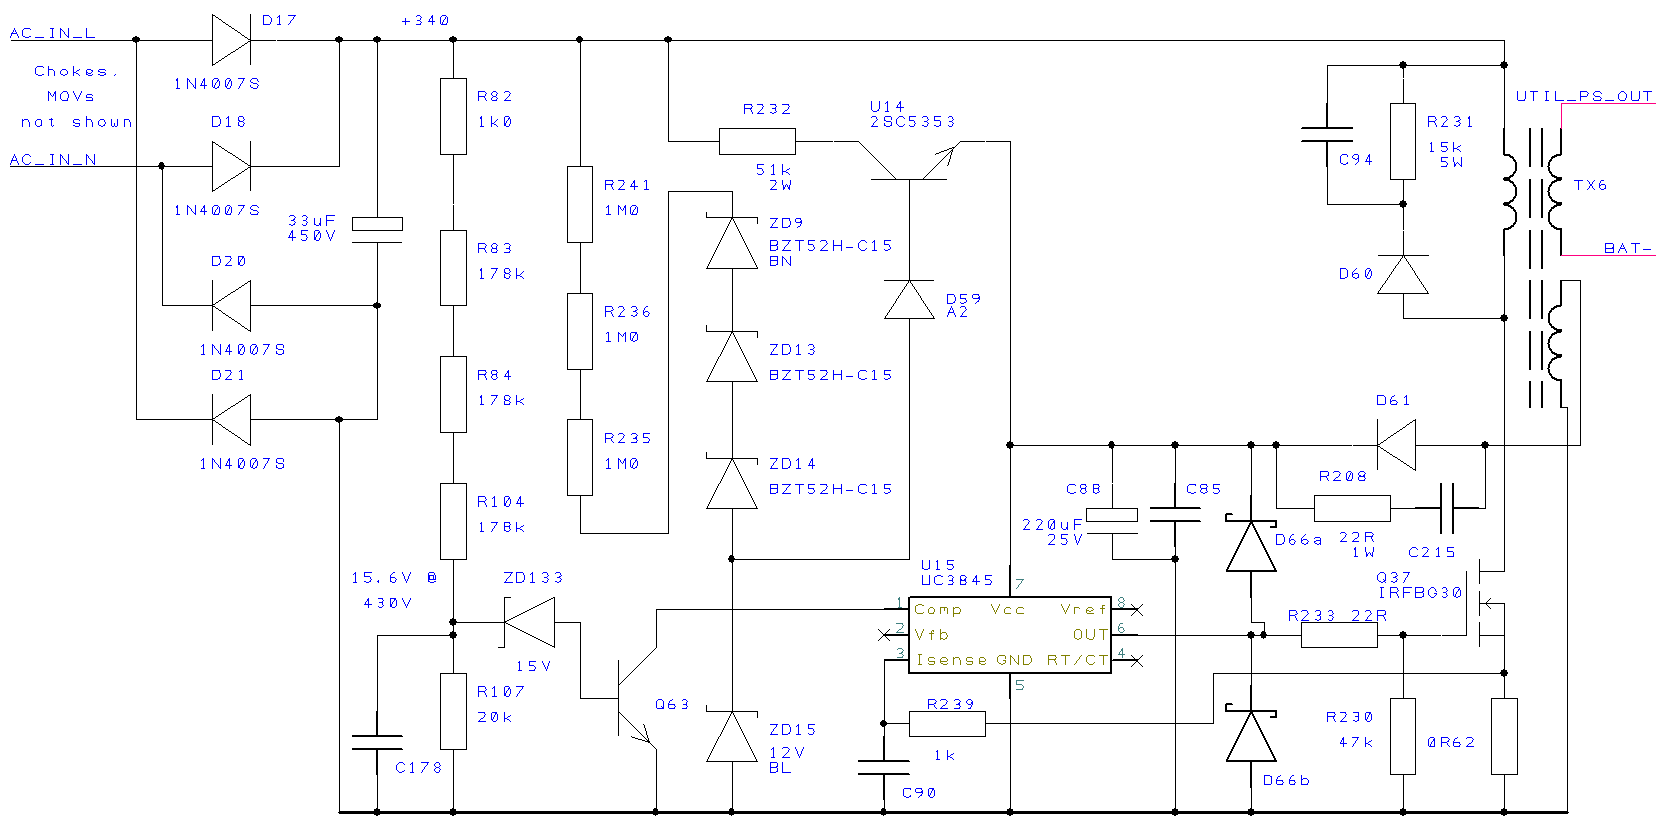 Pip 4048ms And 5048ms Inverters Page 71 Aeva Forums Schematic Diagram Inverter As Usual Use Your Browsers Controls View Image Show In New Tab Etc To See The Detail